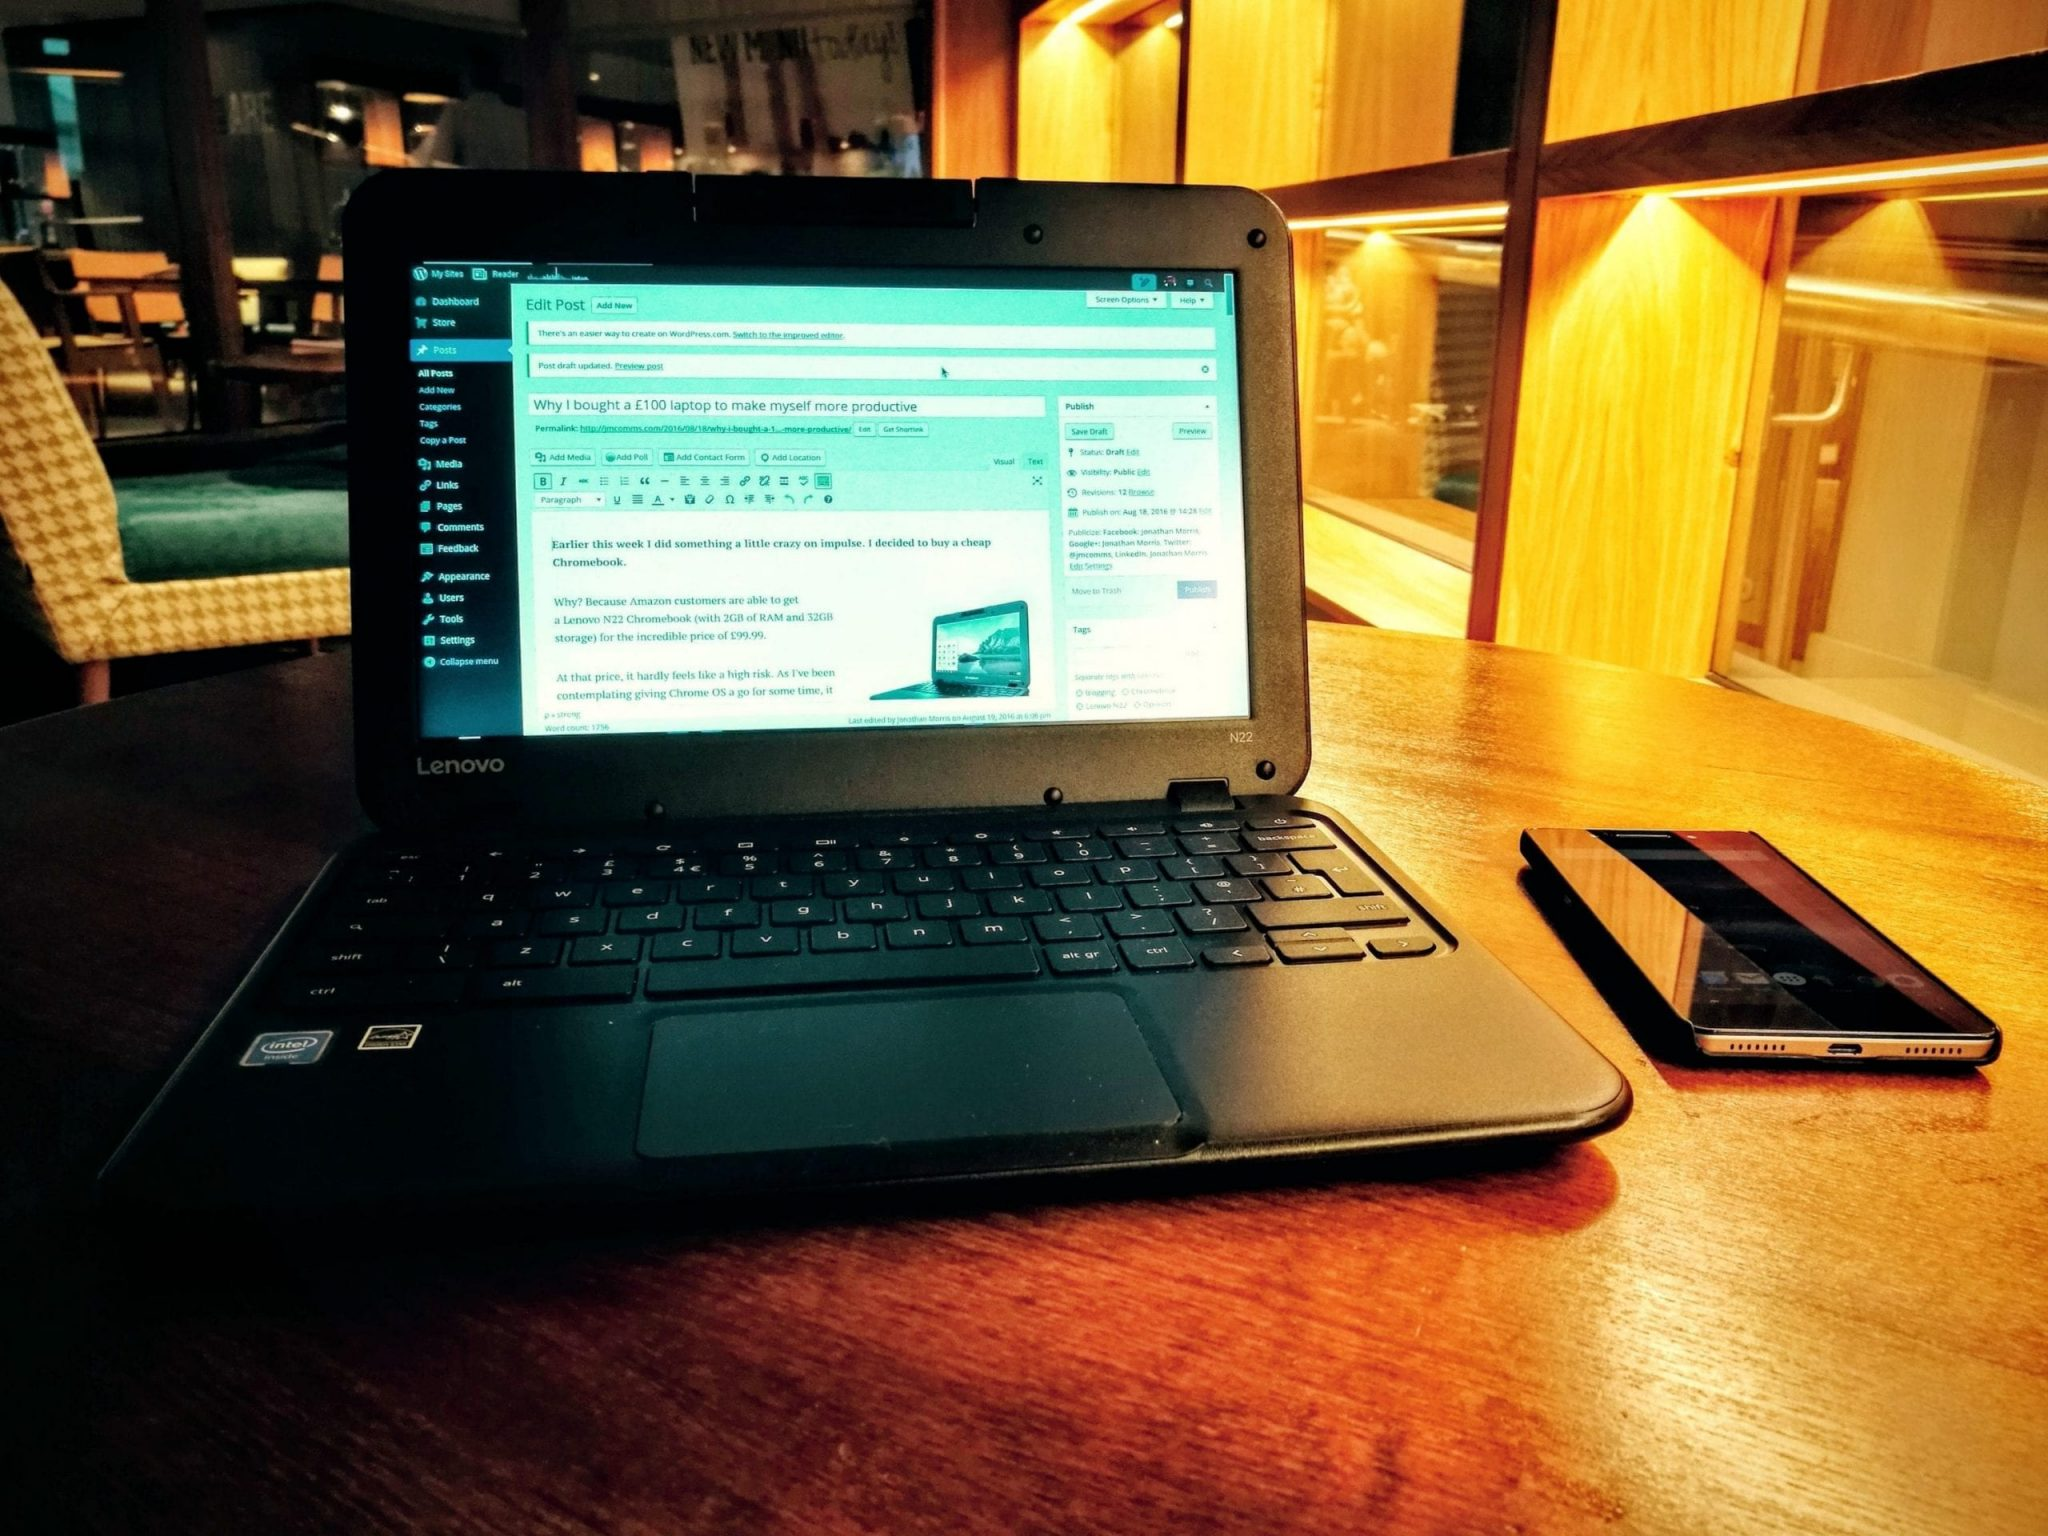 Lenovo N22 on table